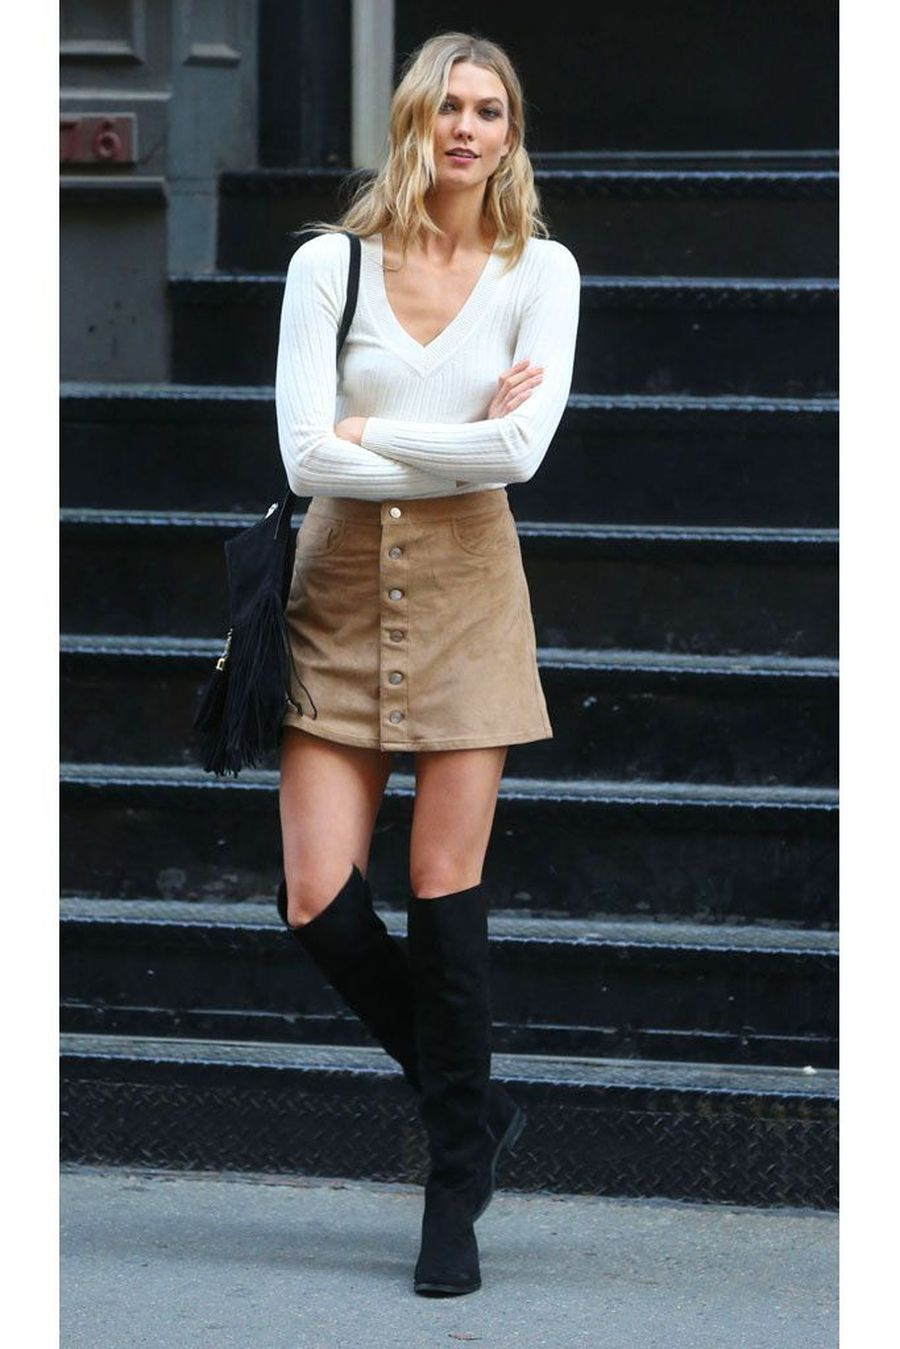 Inspiring skirt and boots combinations for fall and winter outfits 72